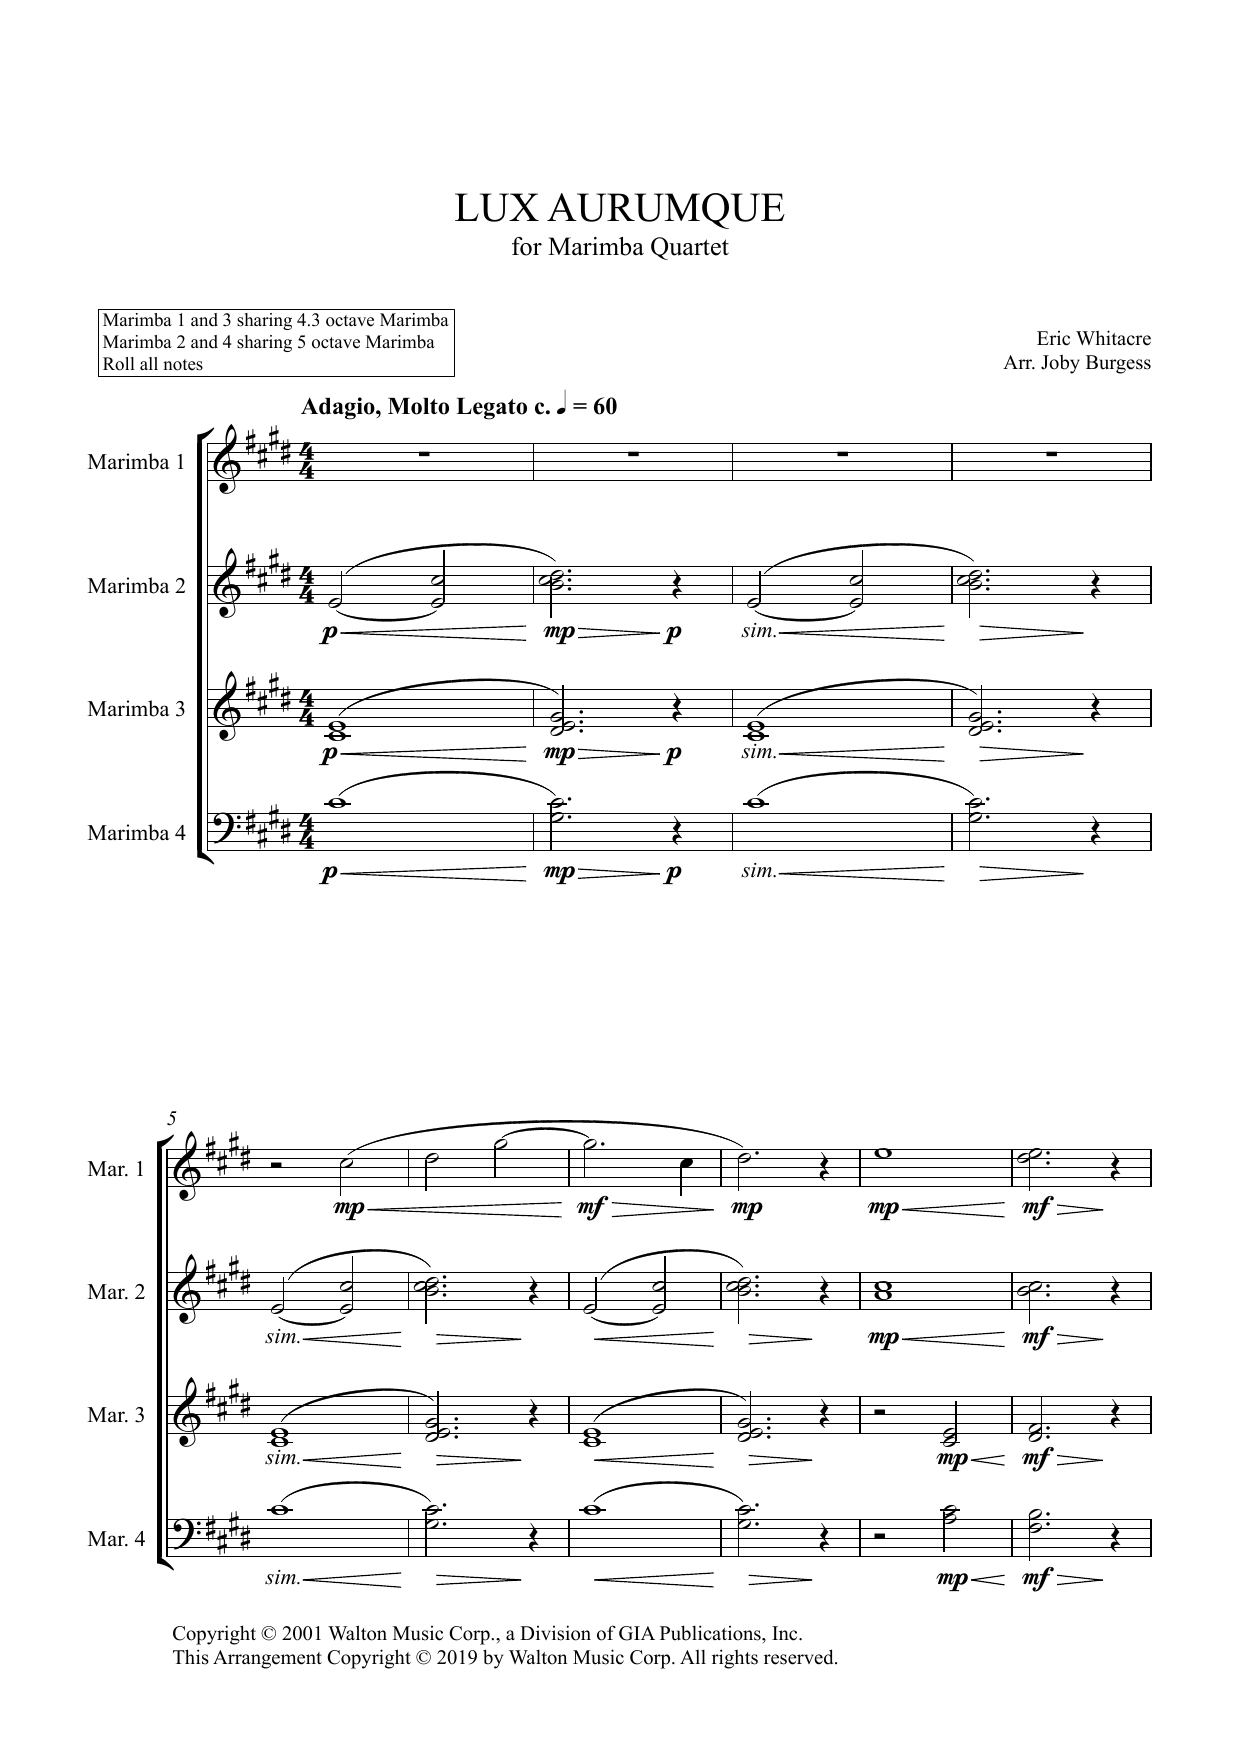 Lux Aurumque for Marimba Quartet (arr. Joby Burgess) - Full Score Digitale Noten